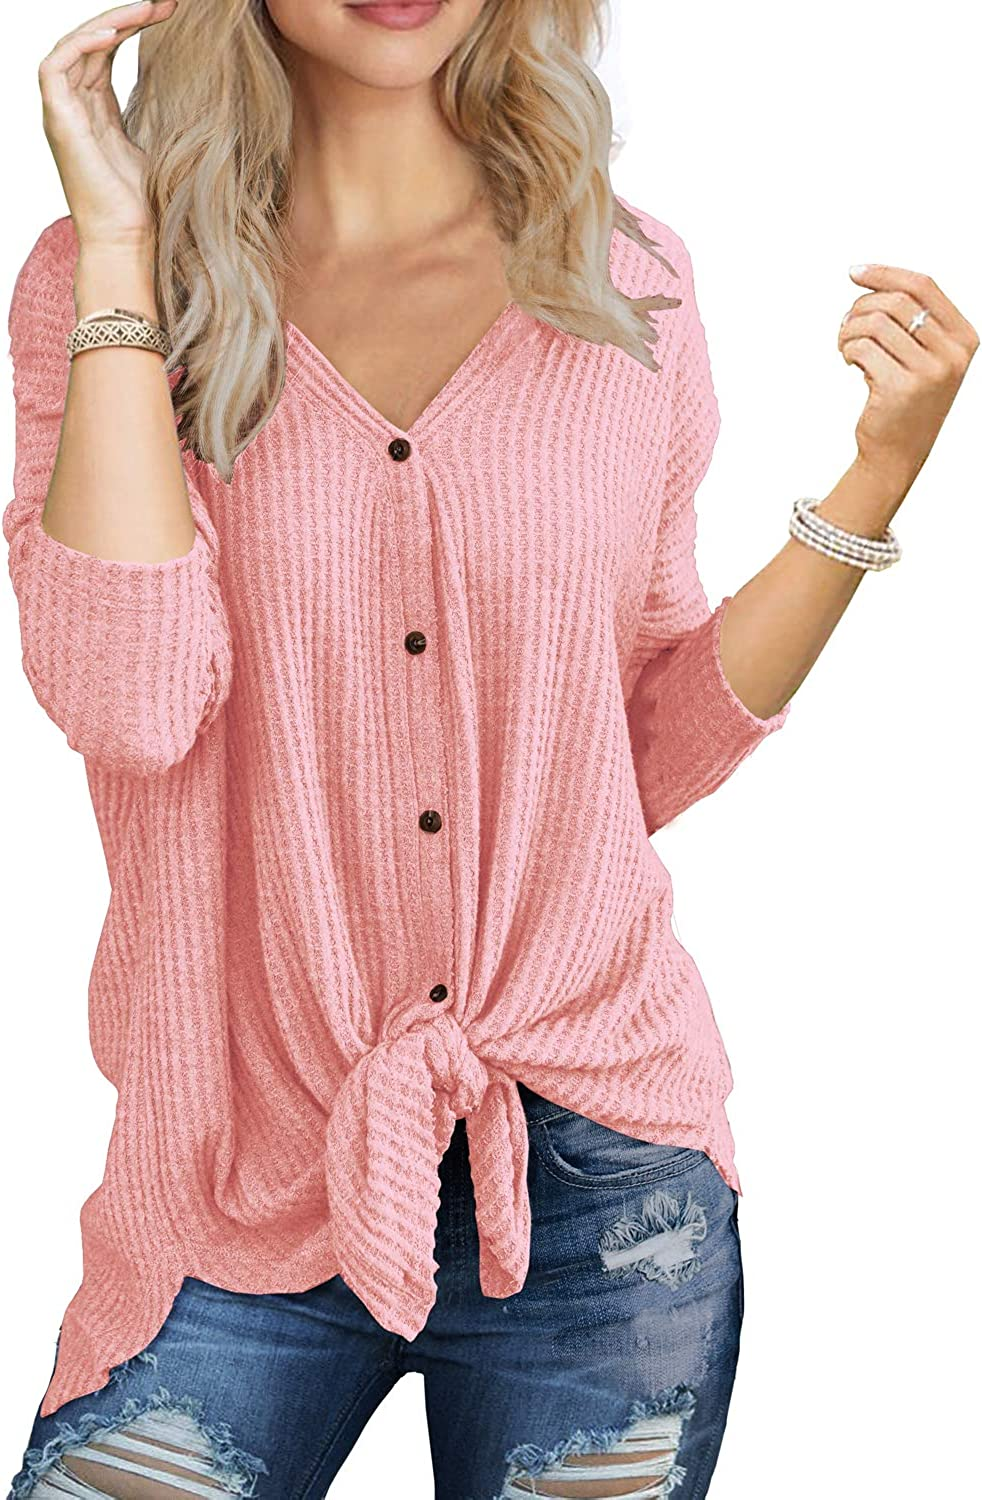 IWOLLENCE Womens Waffle Knit Tunic Blouse Tie Knot Henley Tops Loose Fitting Bat Wing Plain Shirts